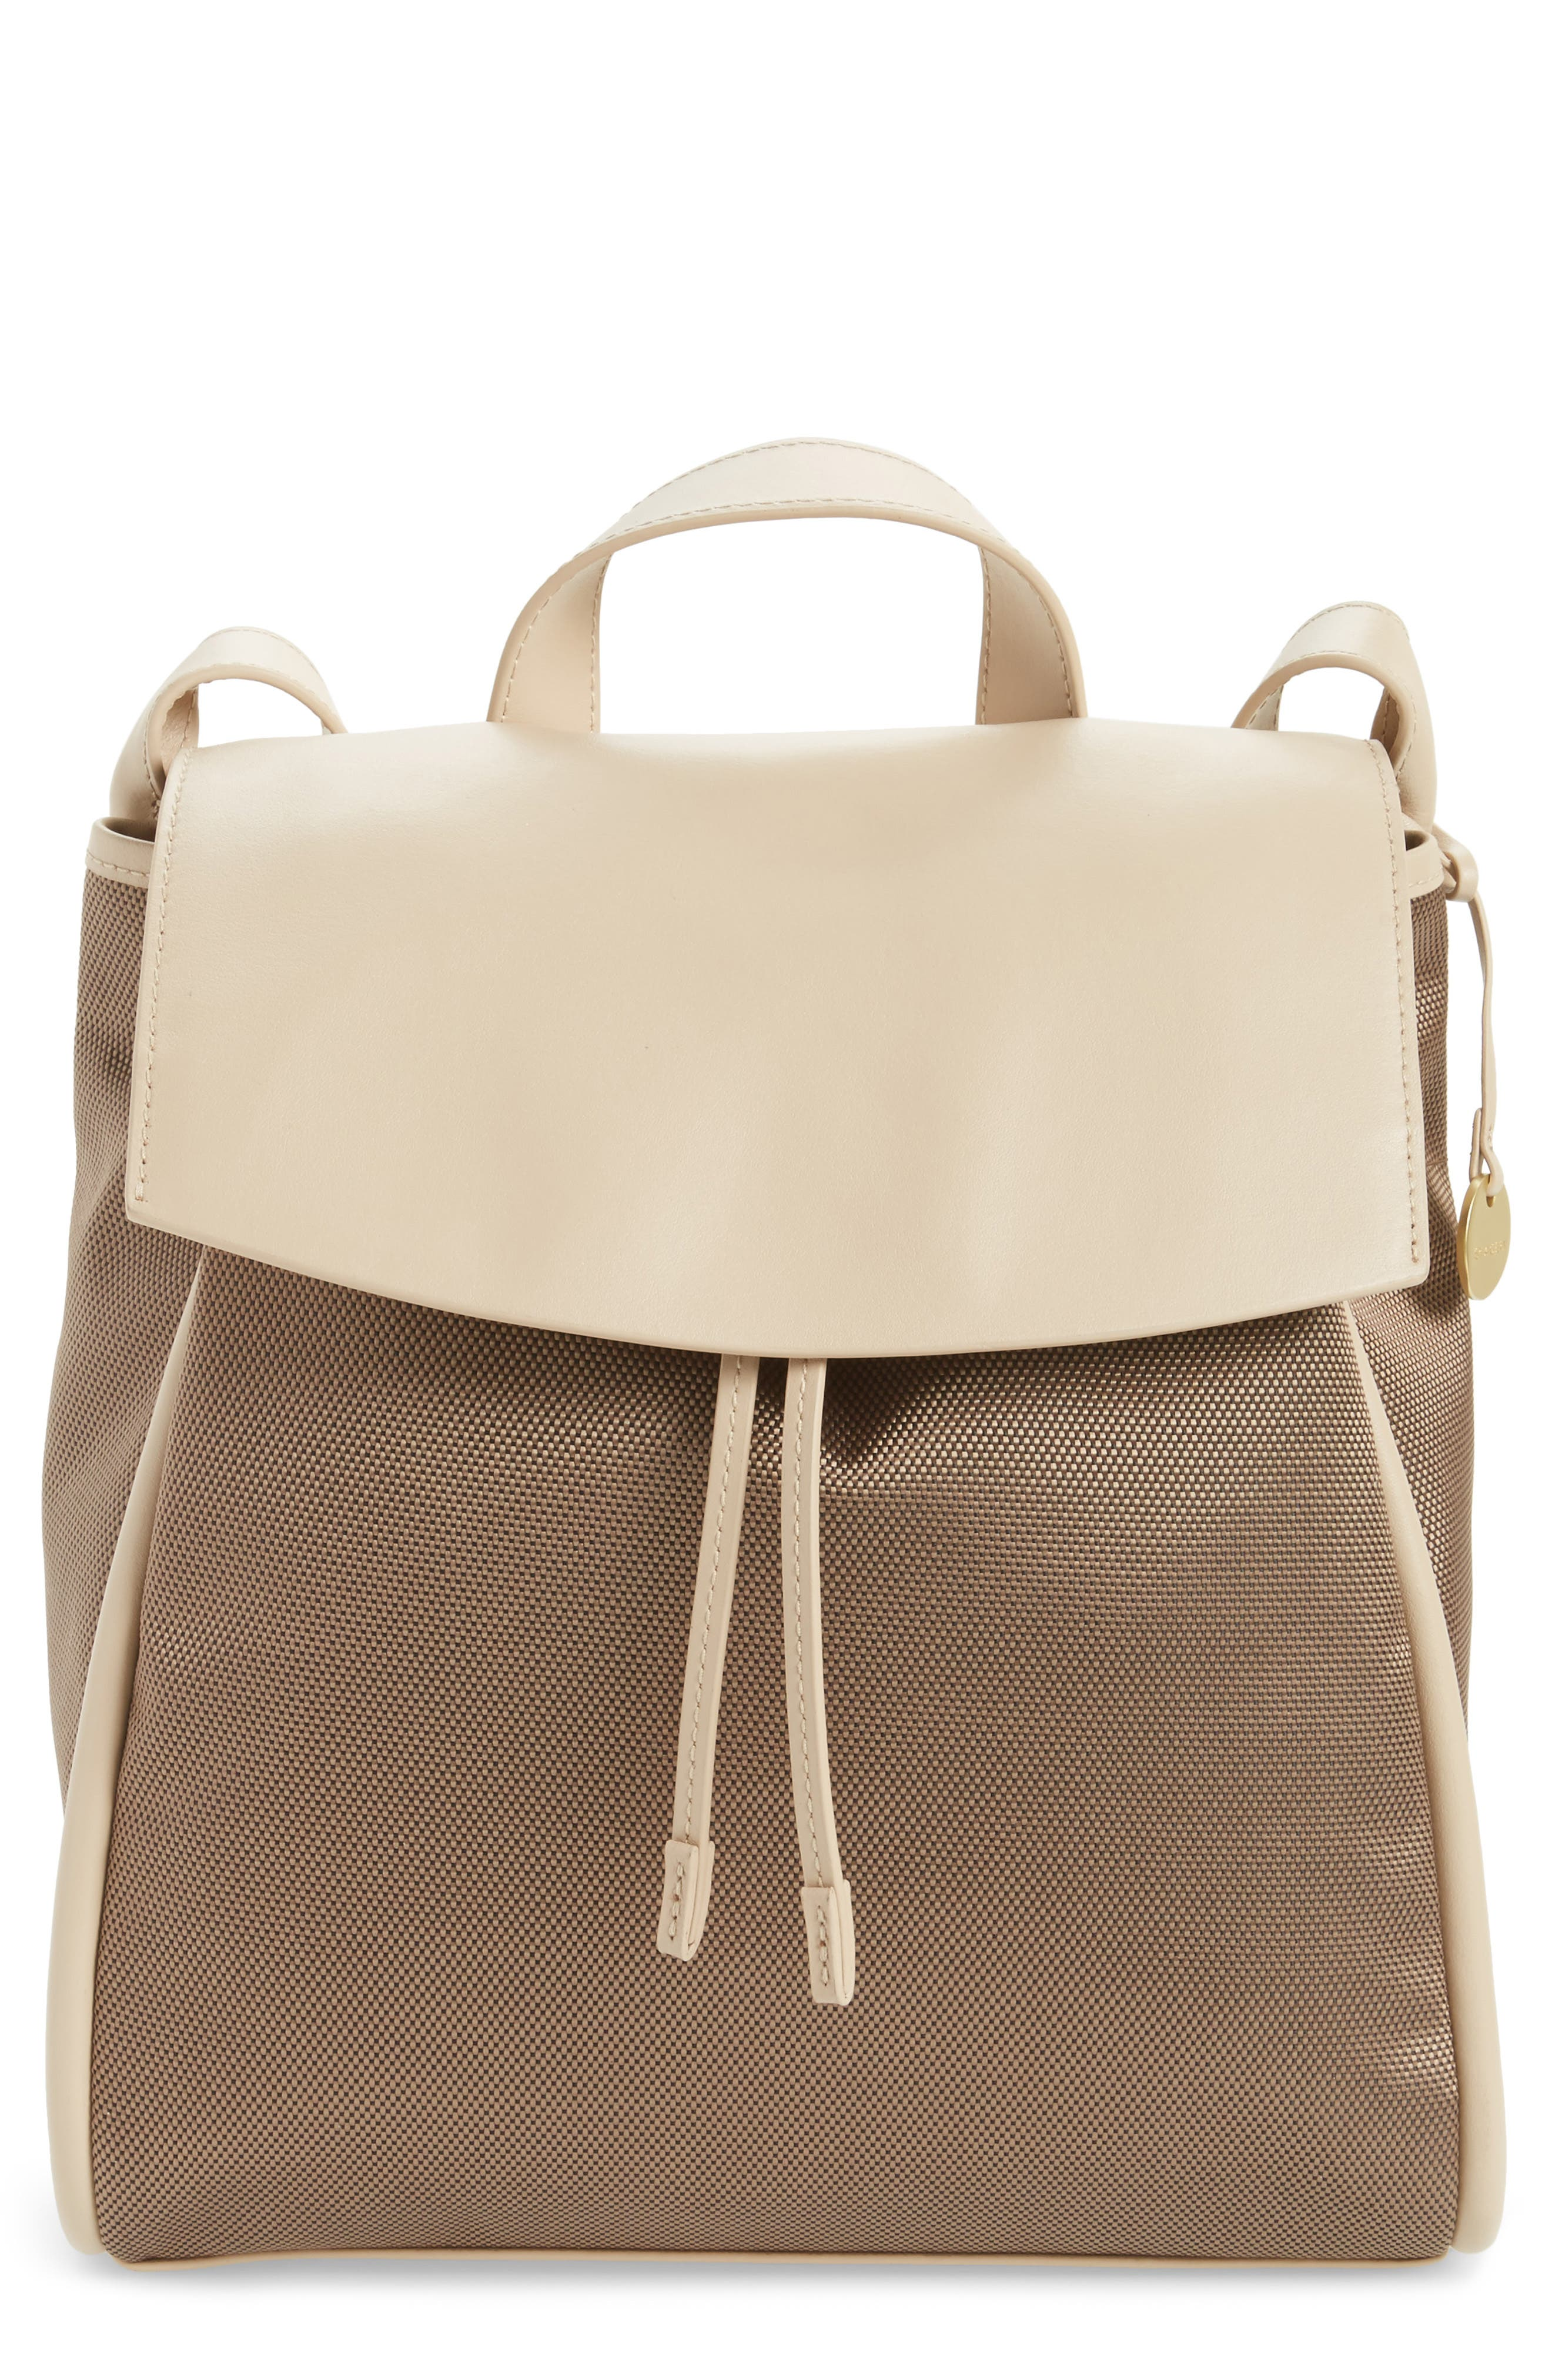 Ebba Leather & Canvas Backpack,                         Main,                         color, 200